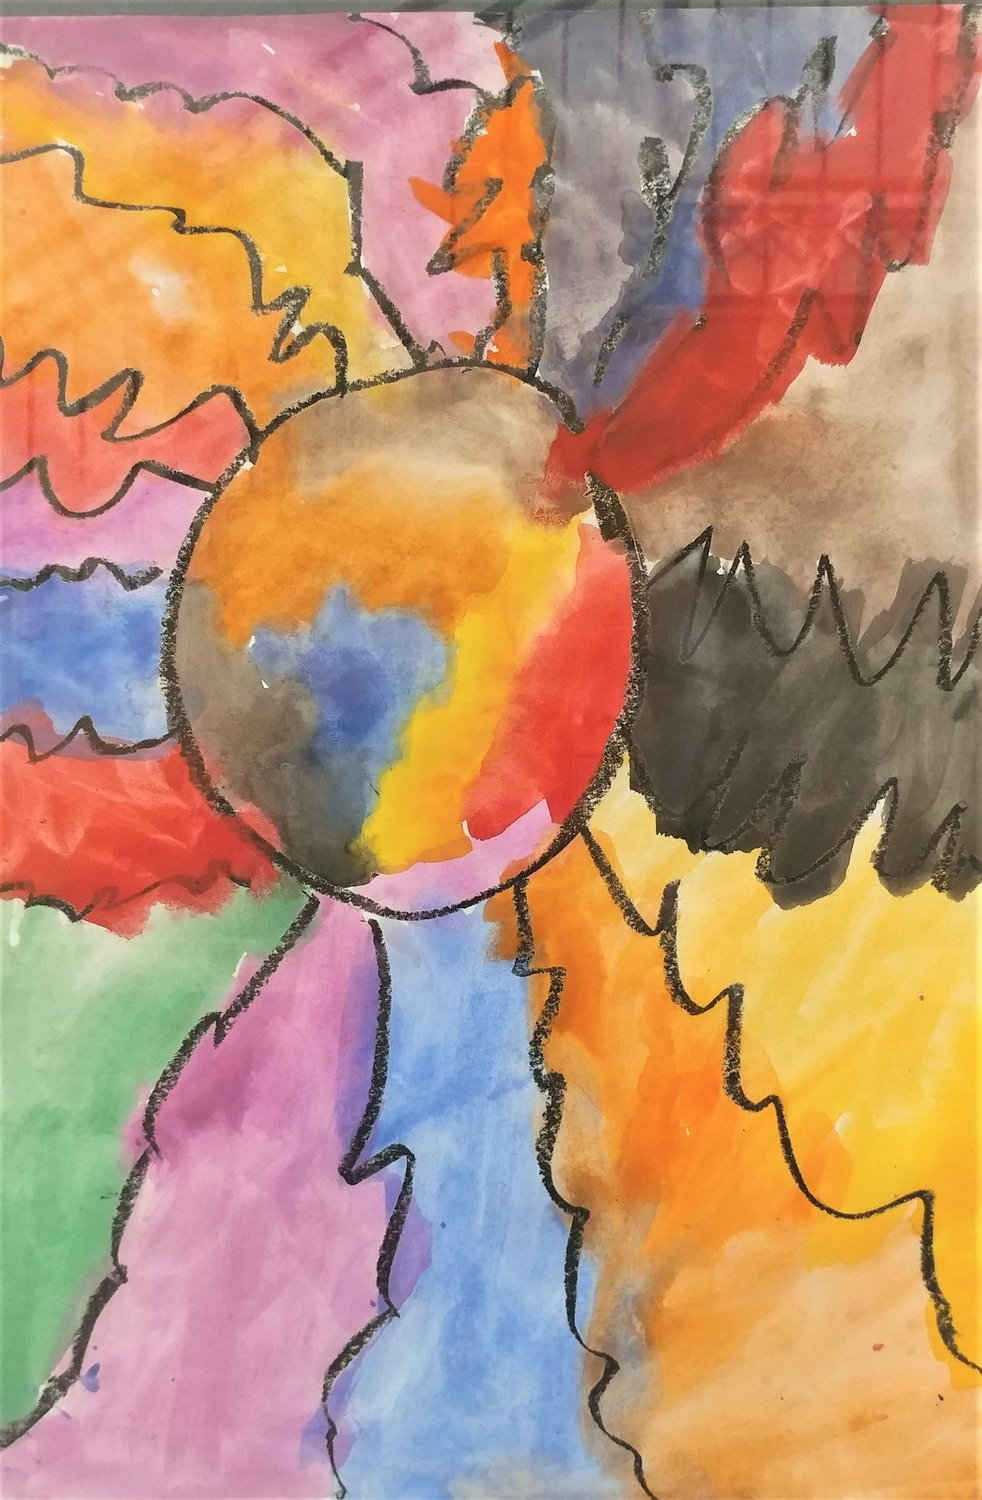 Rainbow and Cloud Flower, by Emry Kelly, kindergarten student at Sonoma Elementary School.